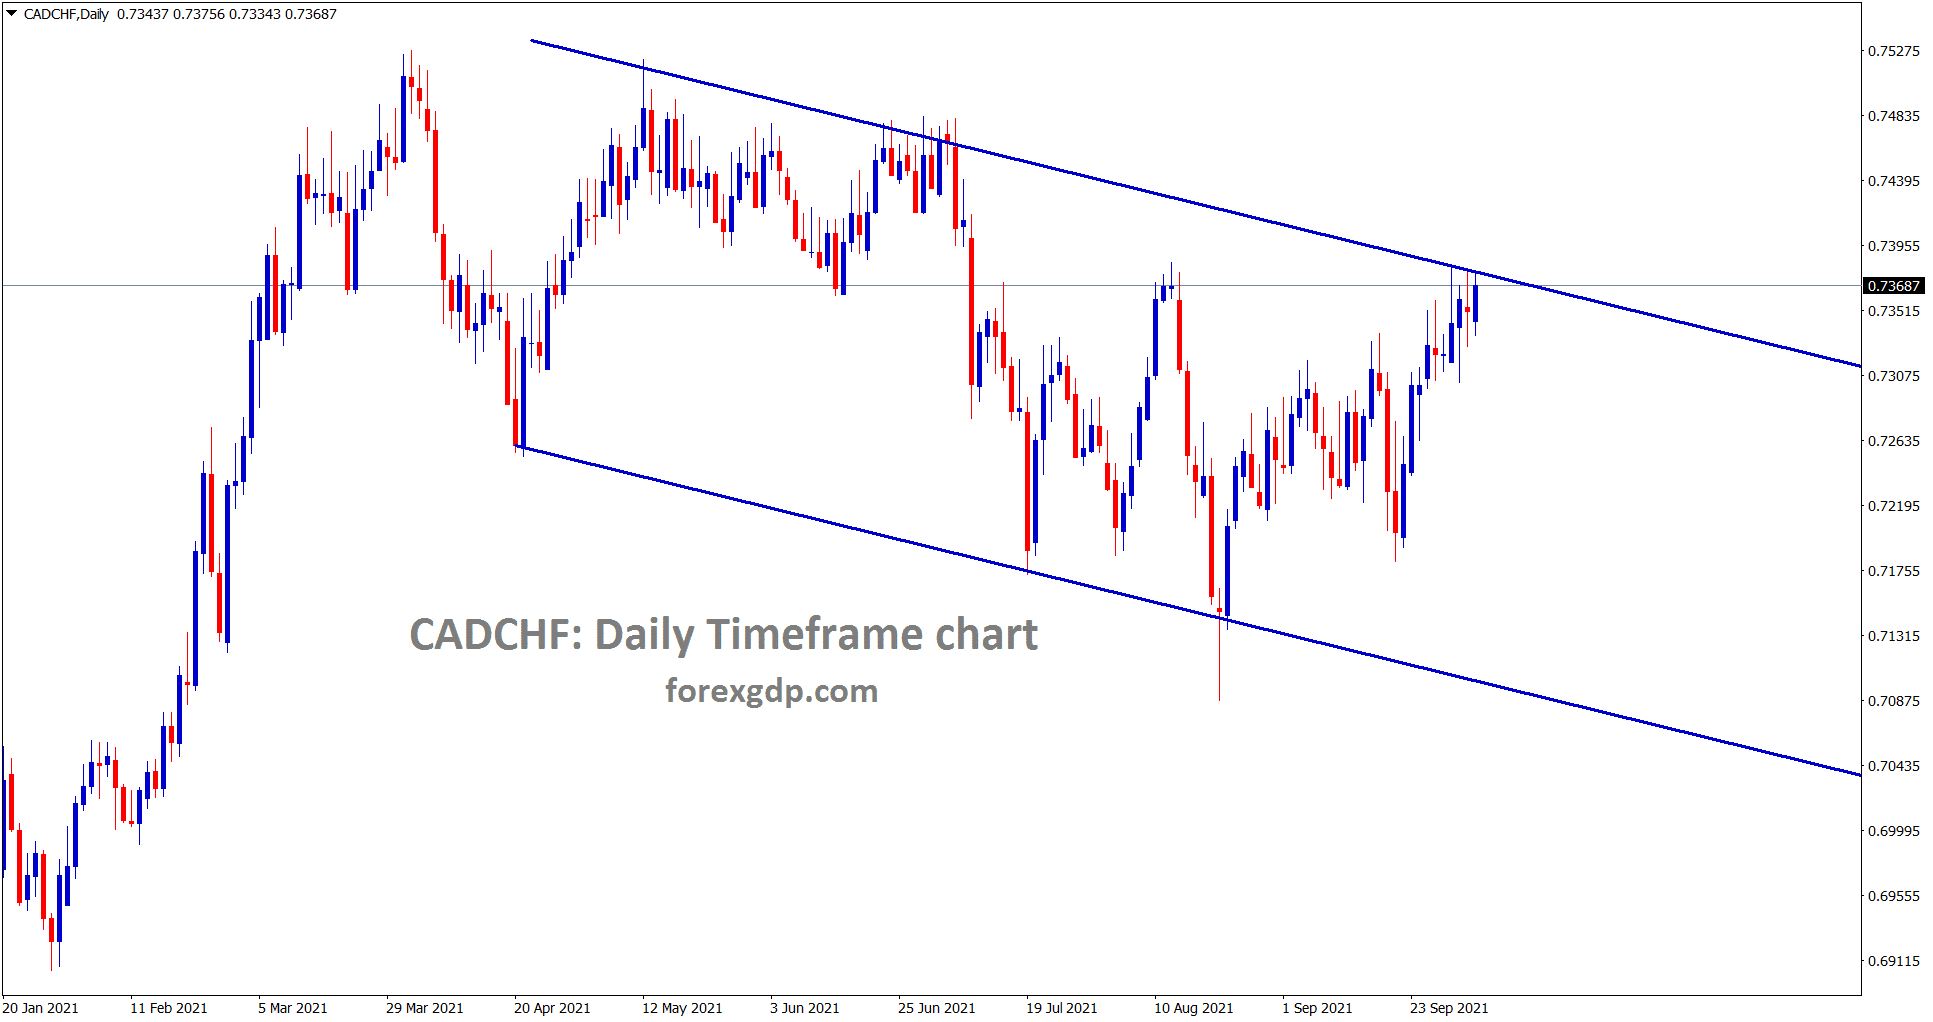 CADCHF is standing at the lower high level of the descending channel